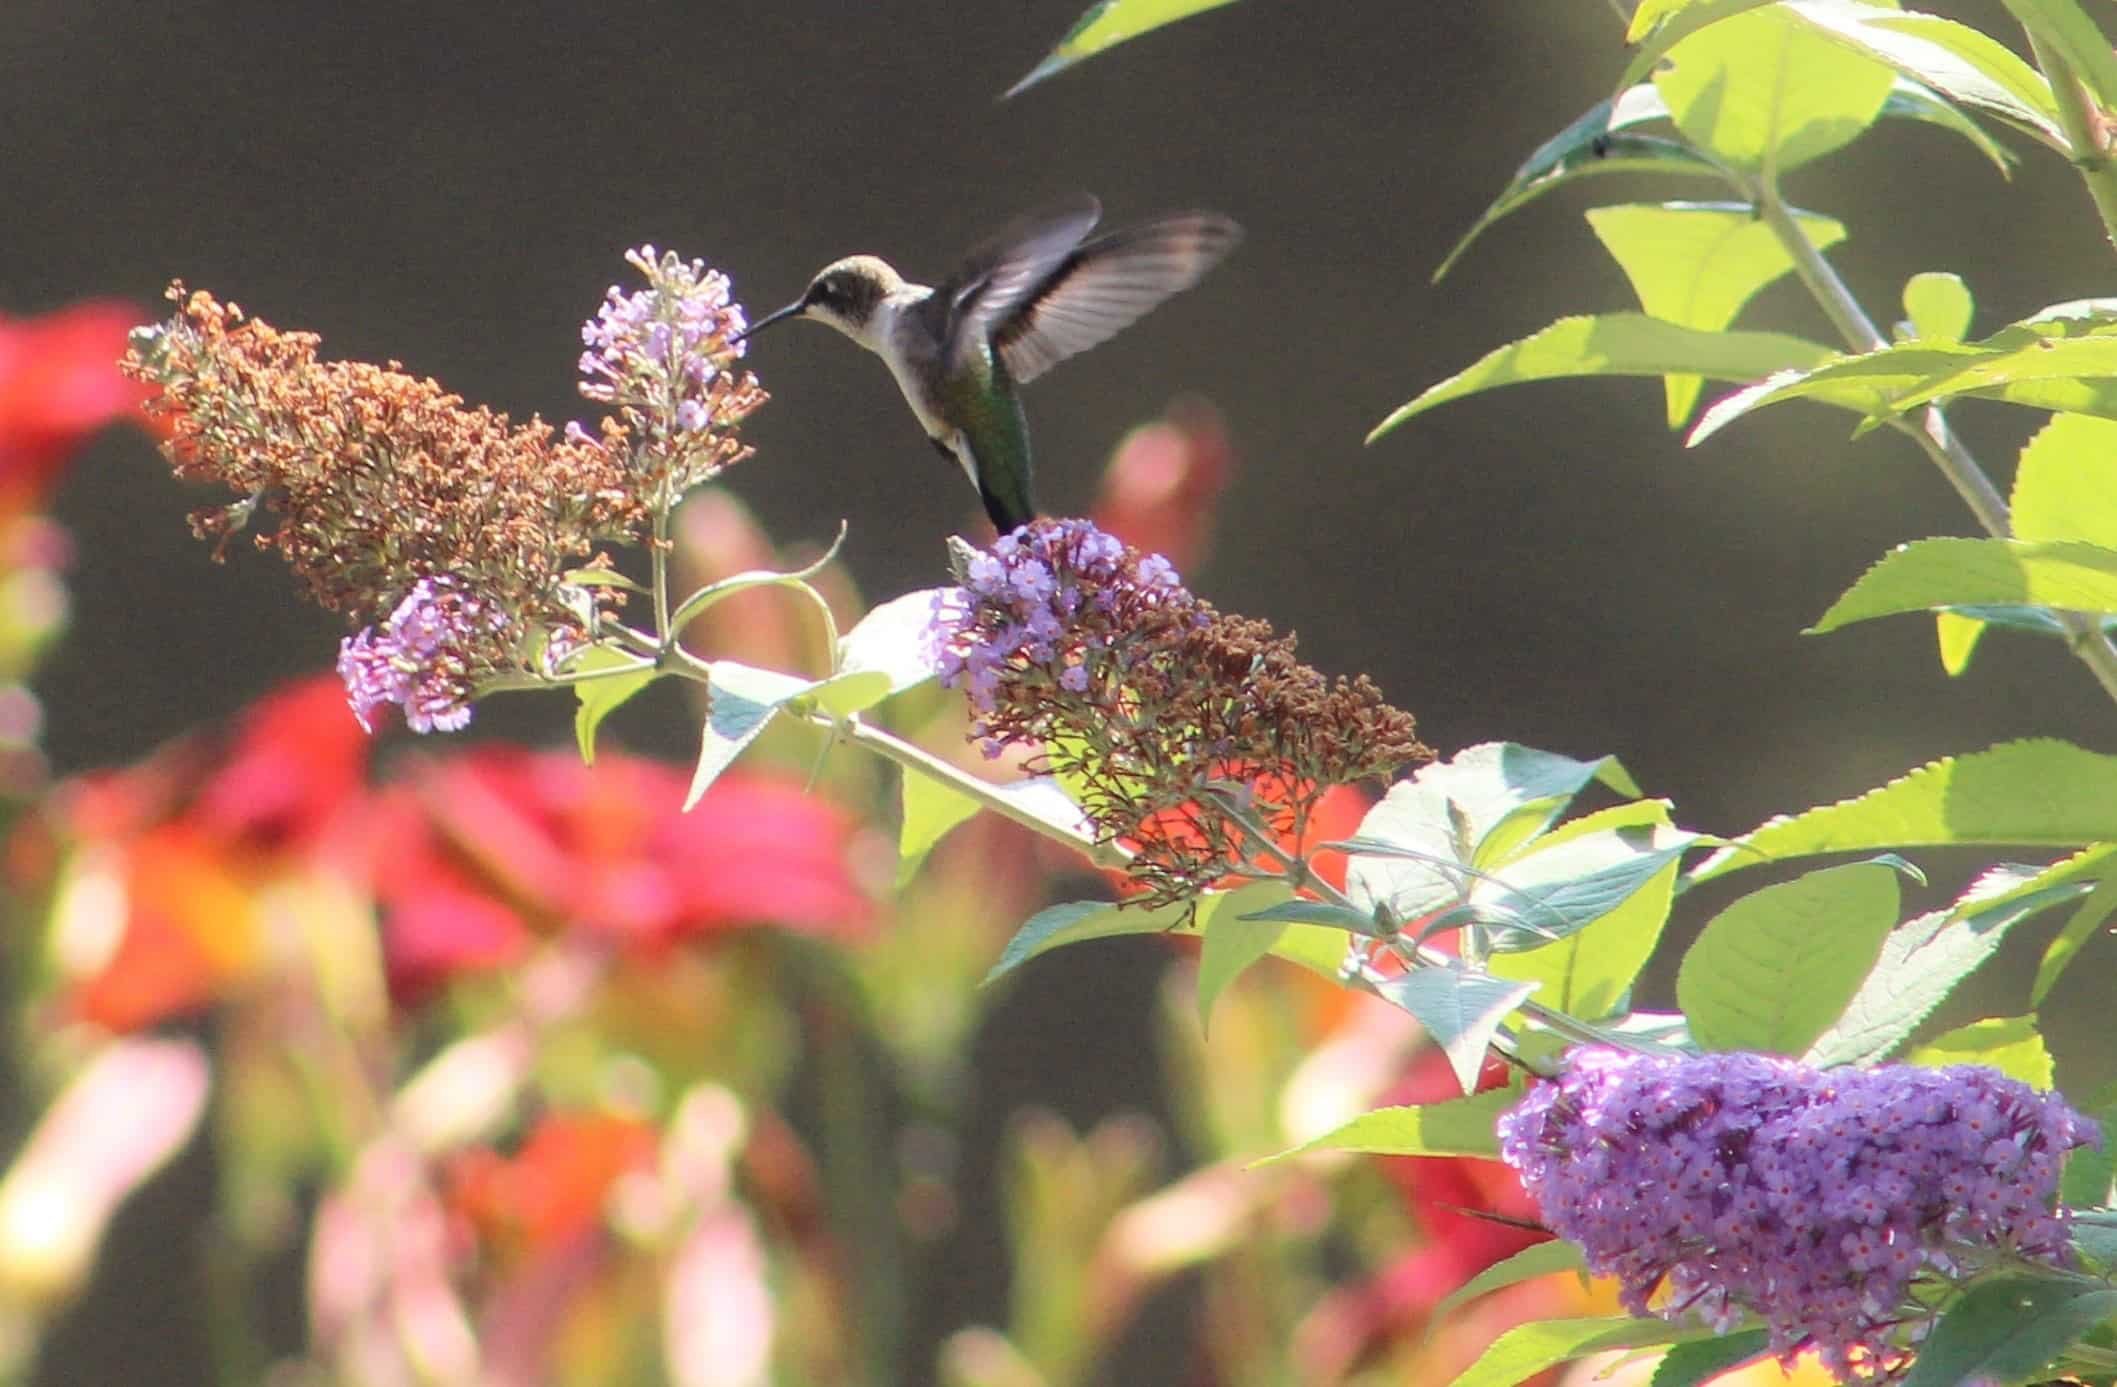 Flying hummingbird is eating a purple nectar